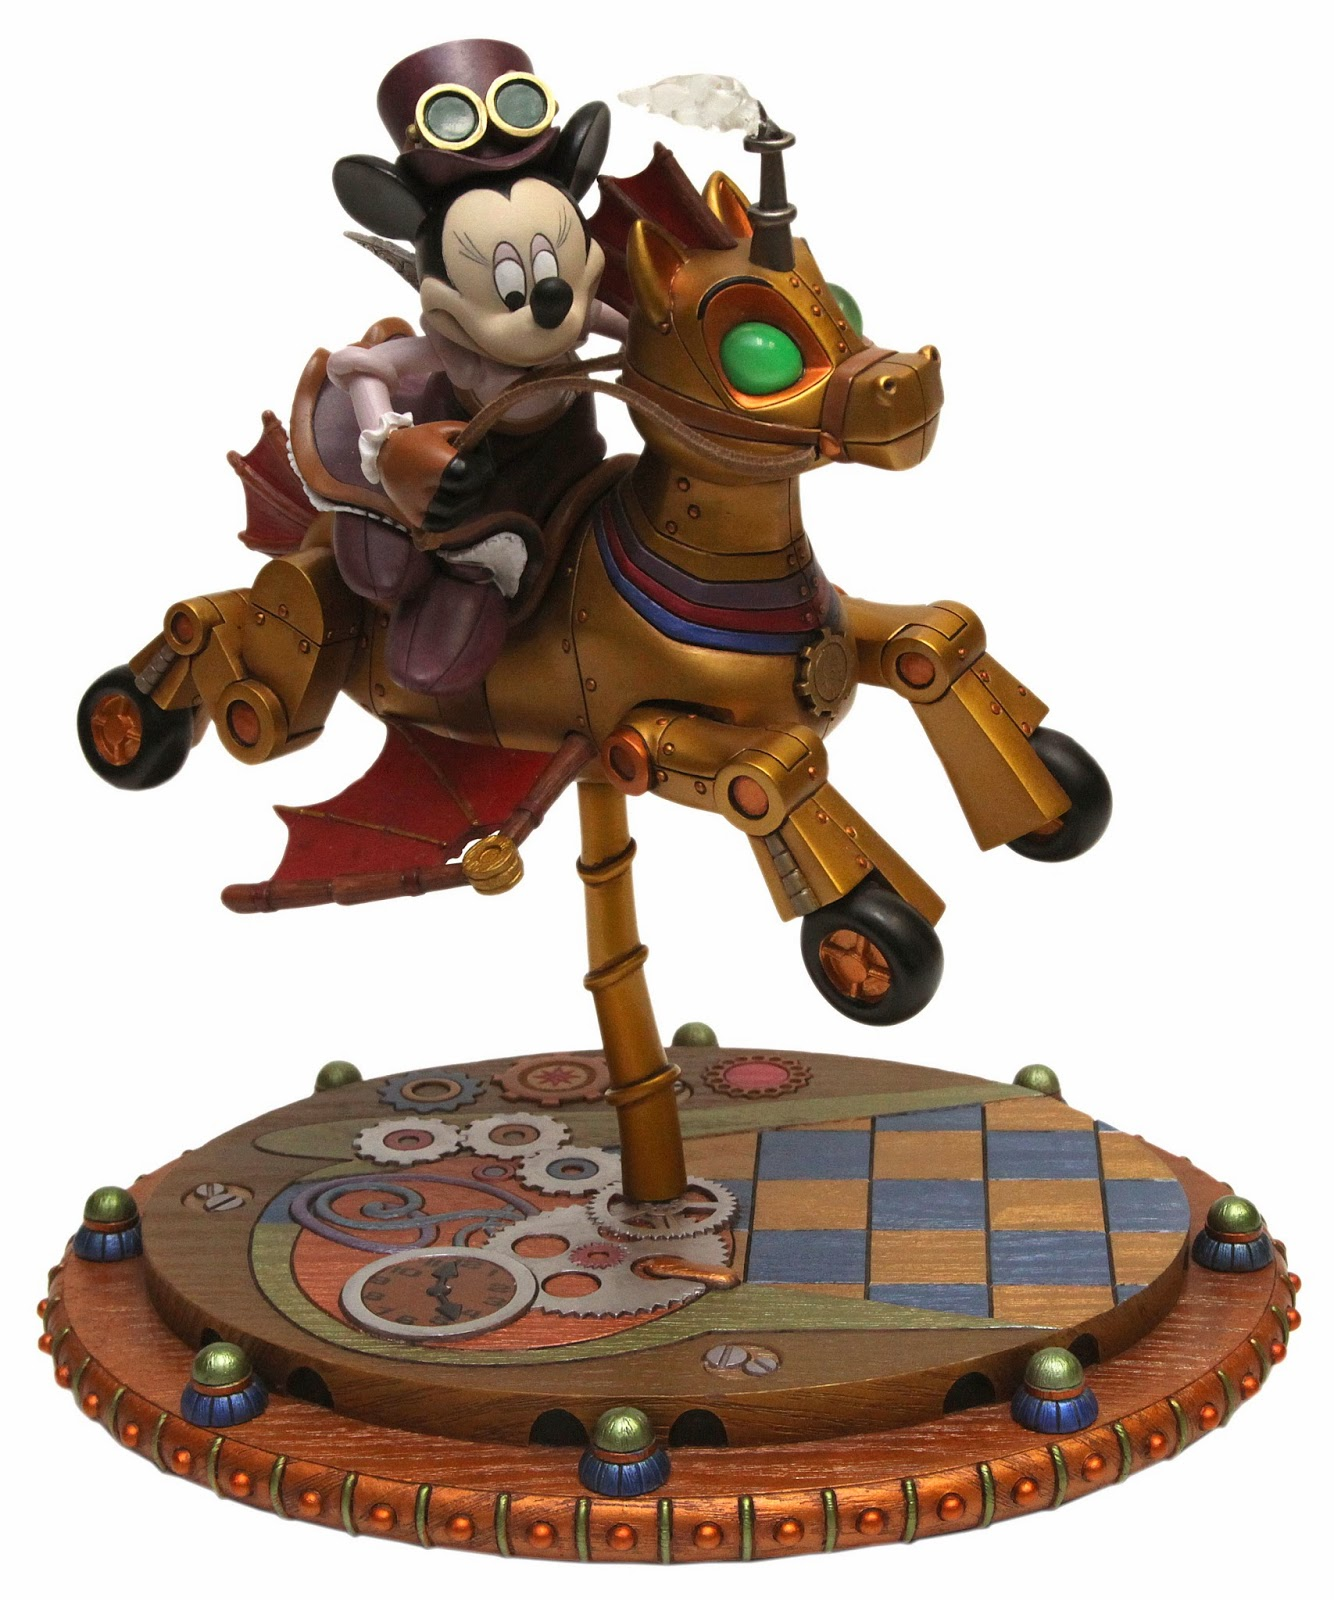 Minnie Mouse Mechanical Kingdom Gears Figure Figurine Statues Carousel Horse Steamunk Walt Disney World WDW Disneyland